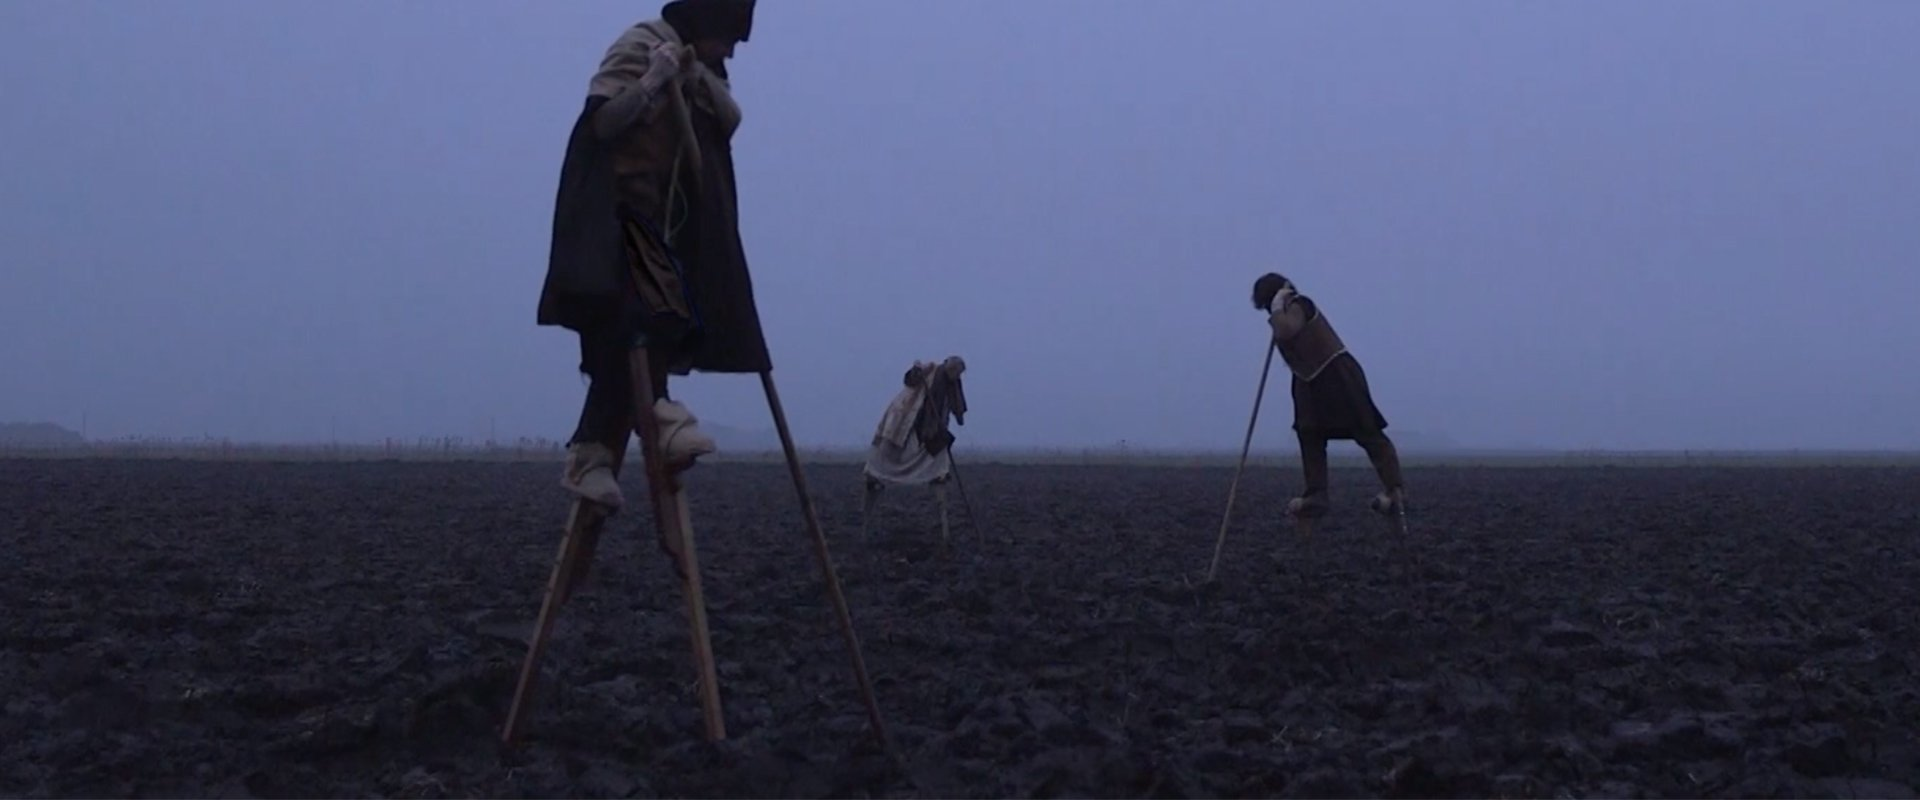 Three people on stilts are moving in a barren foggy landscape